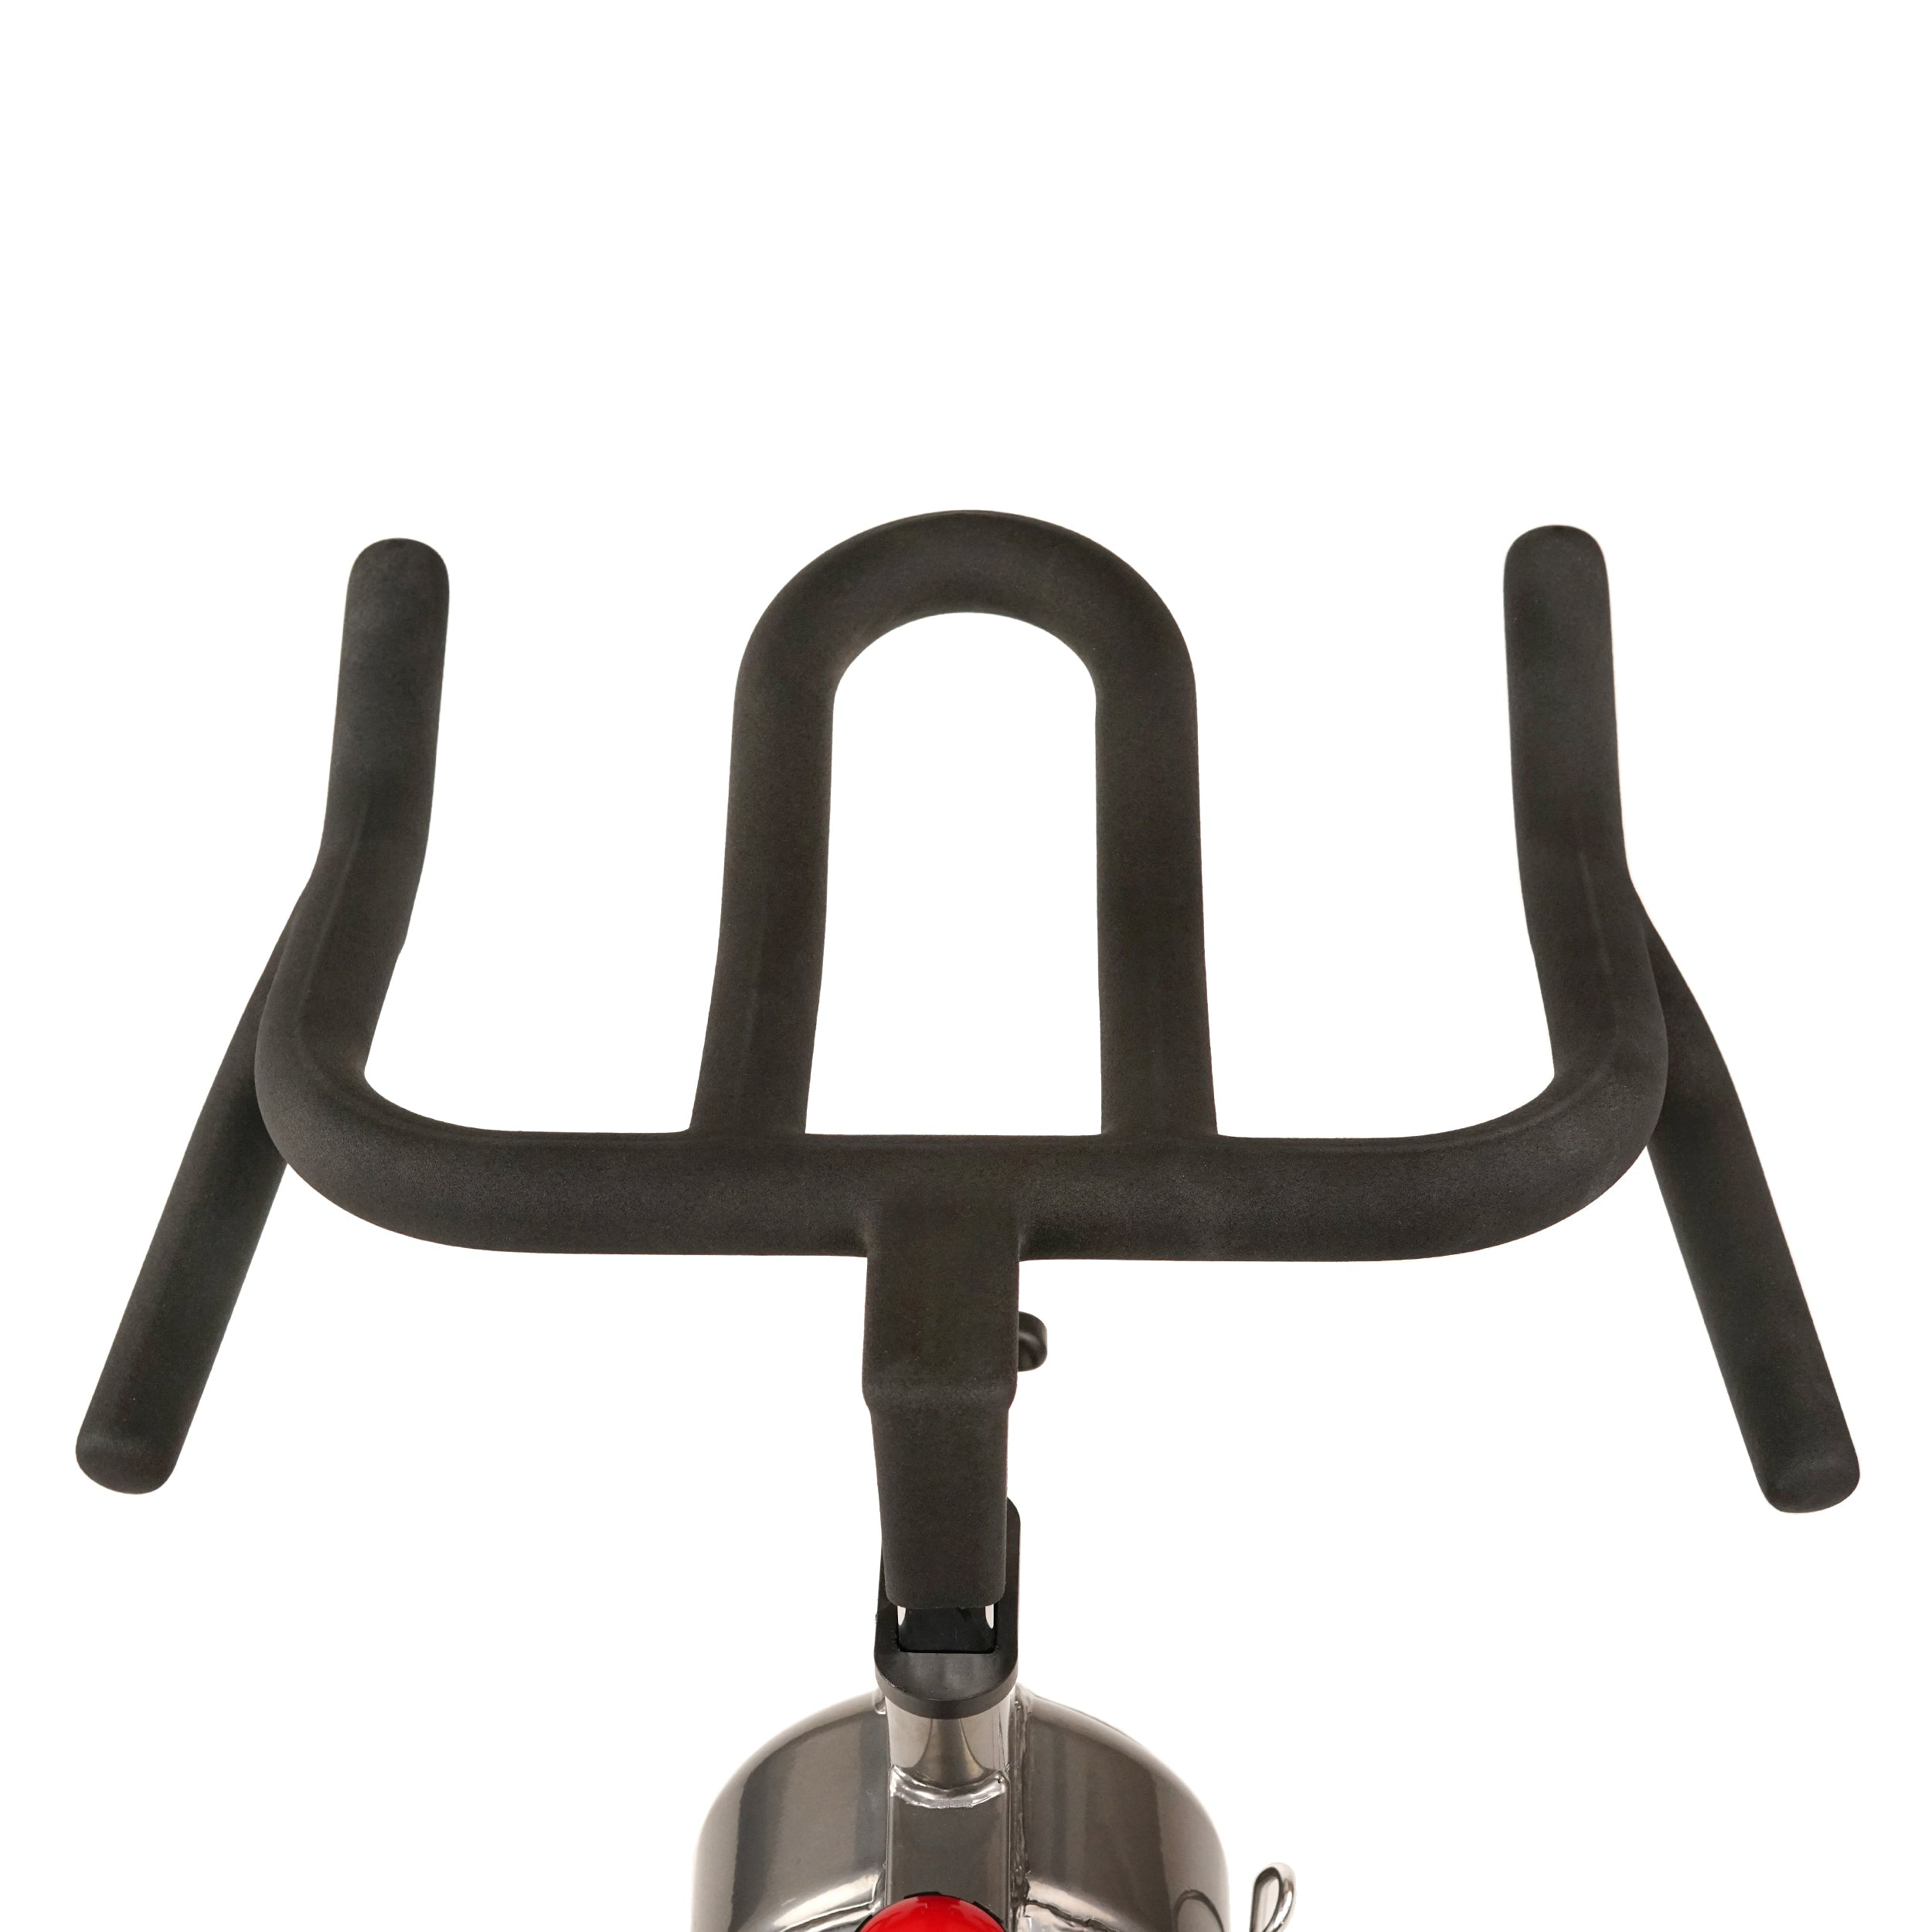 sunny-health-fitness-bikes-48.5lb-flywheel-chain-drive-commercial-indoor-cycling-exercise-bike-SF-B1516-handlebars